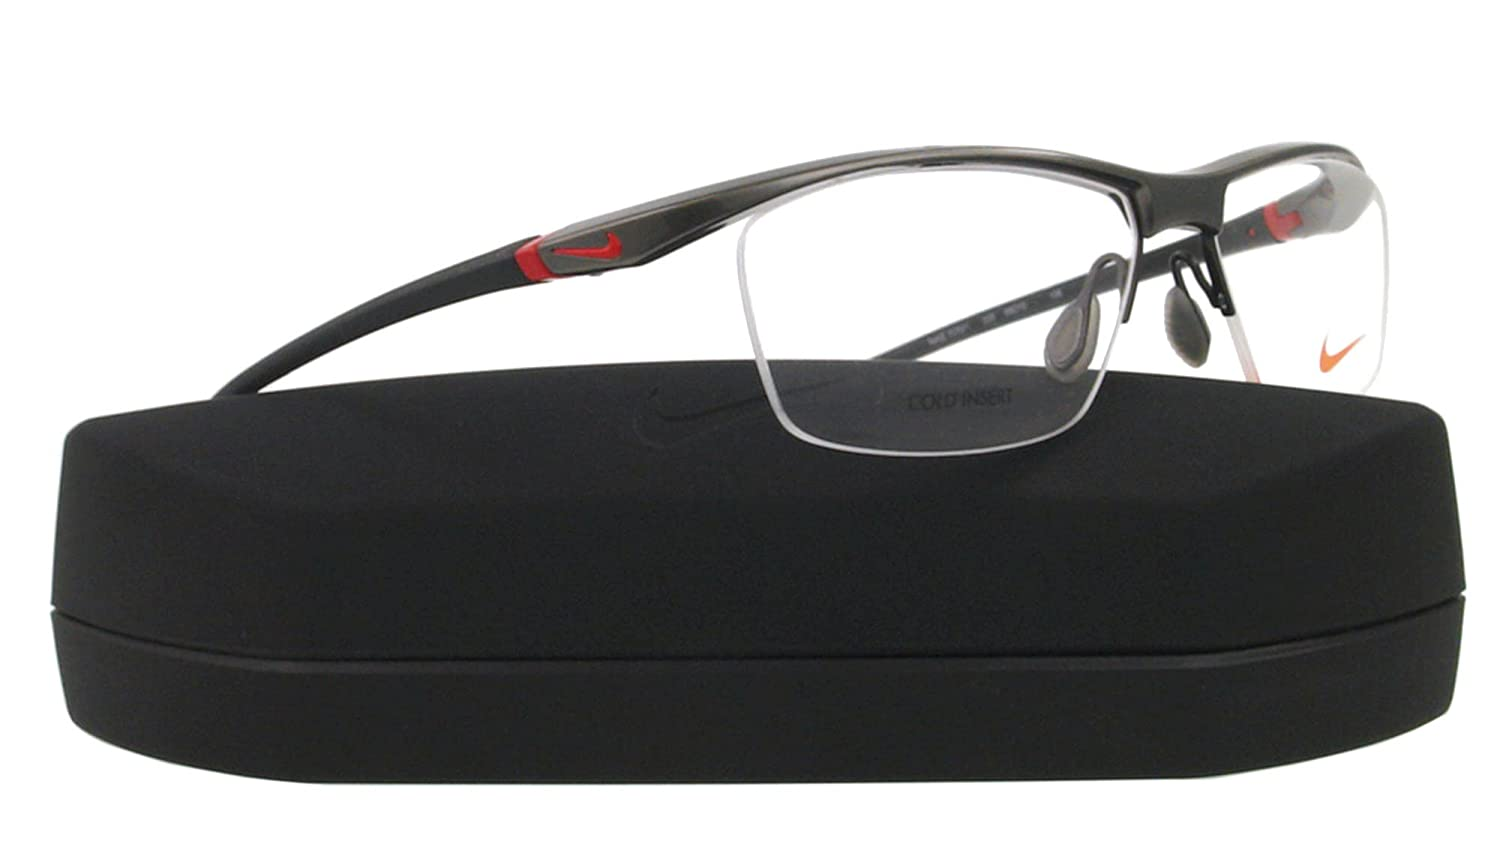 617b9b1f90 Amazon.com  Nike Eyeglasses NK 7070 1 GREY 035 NK7070 56  Nike  Health    Personal Care